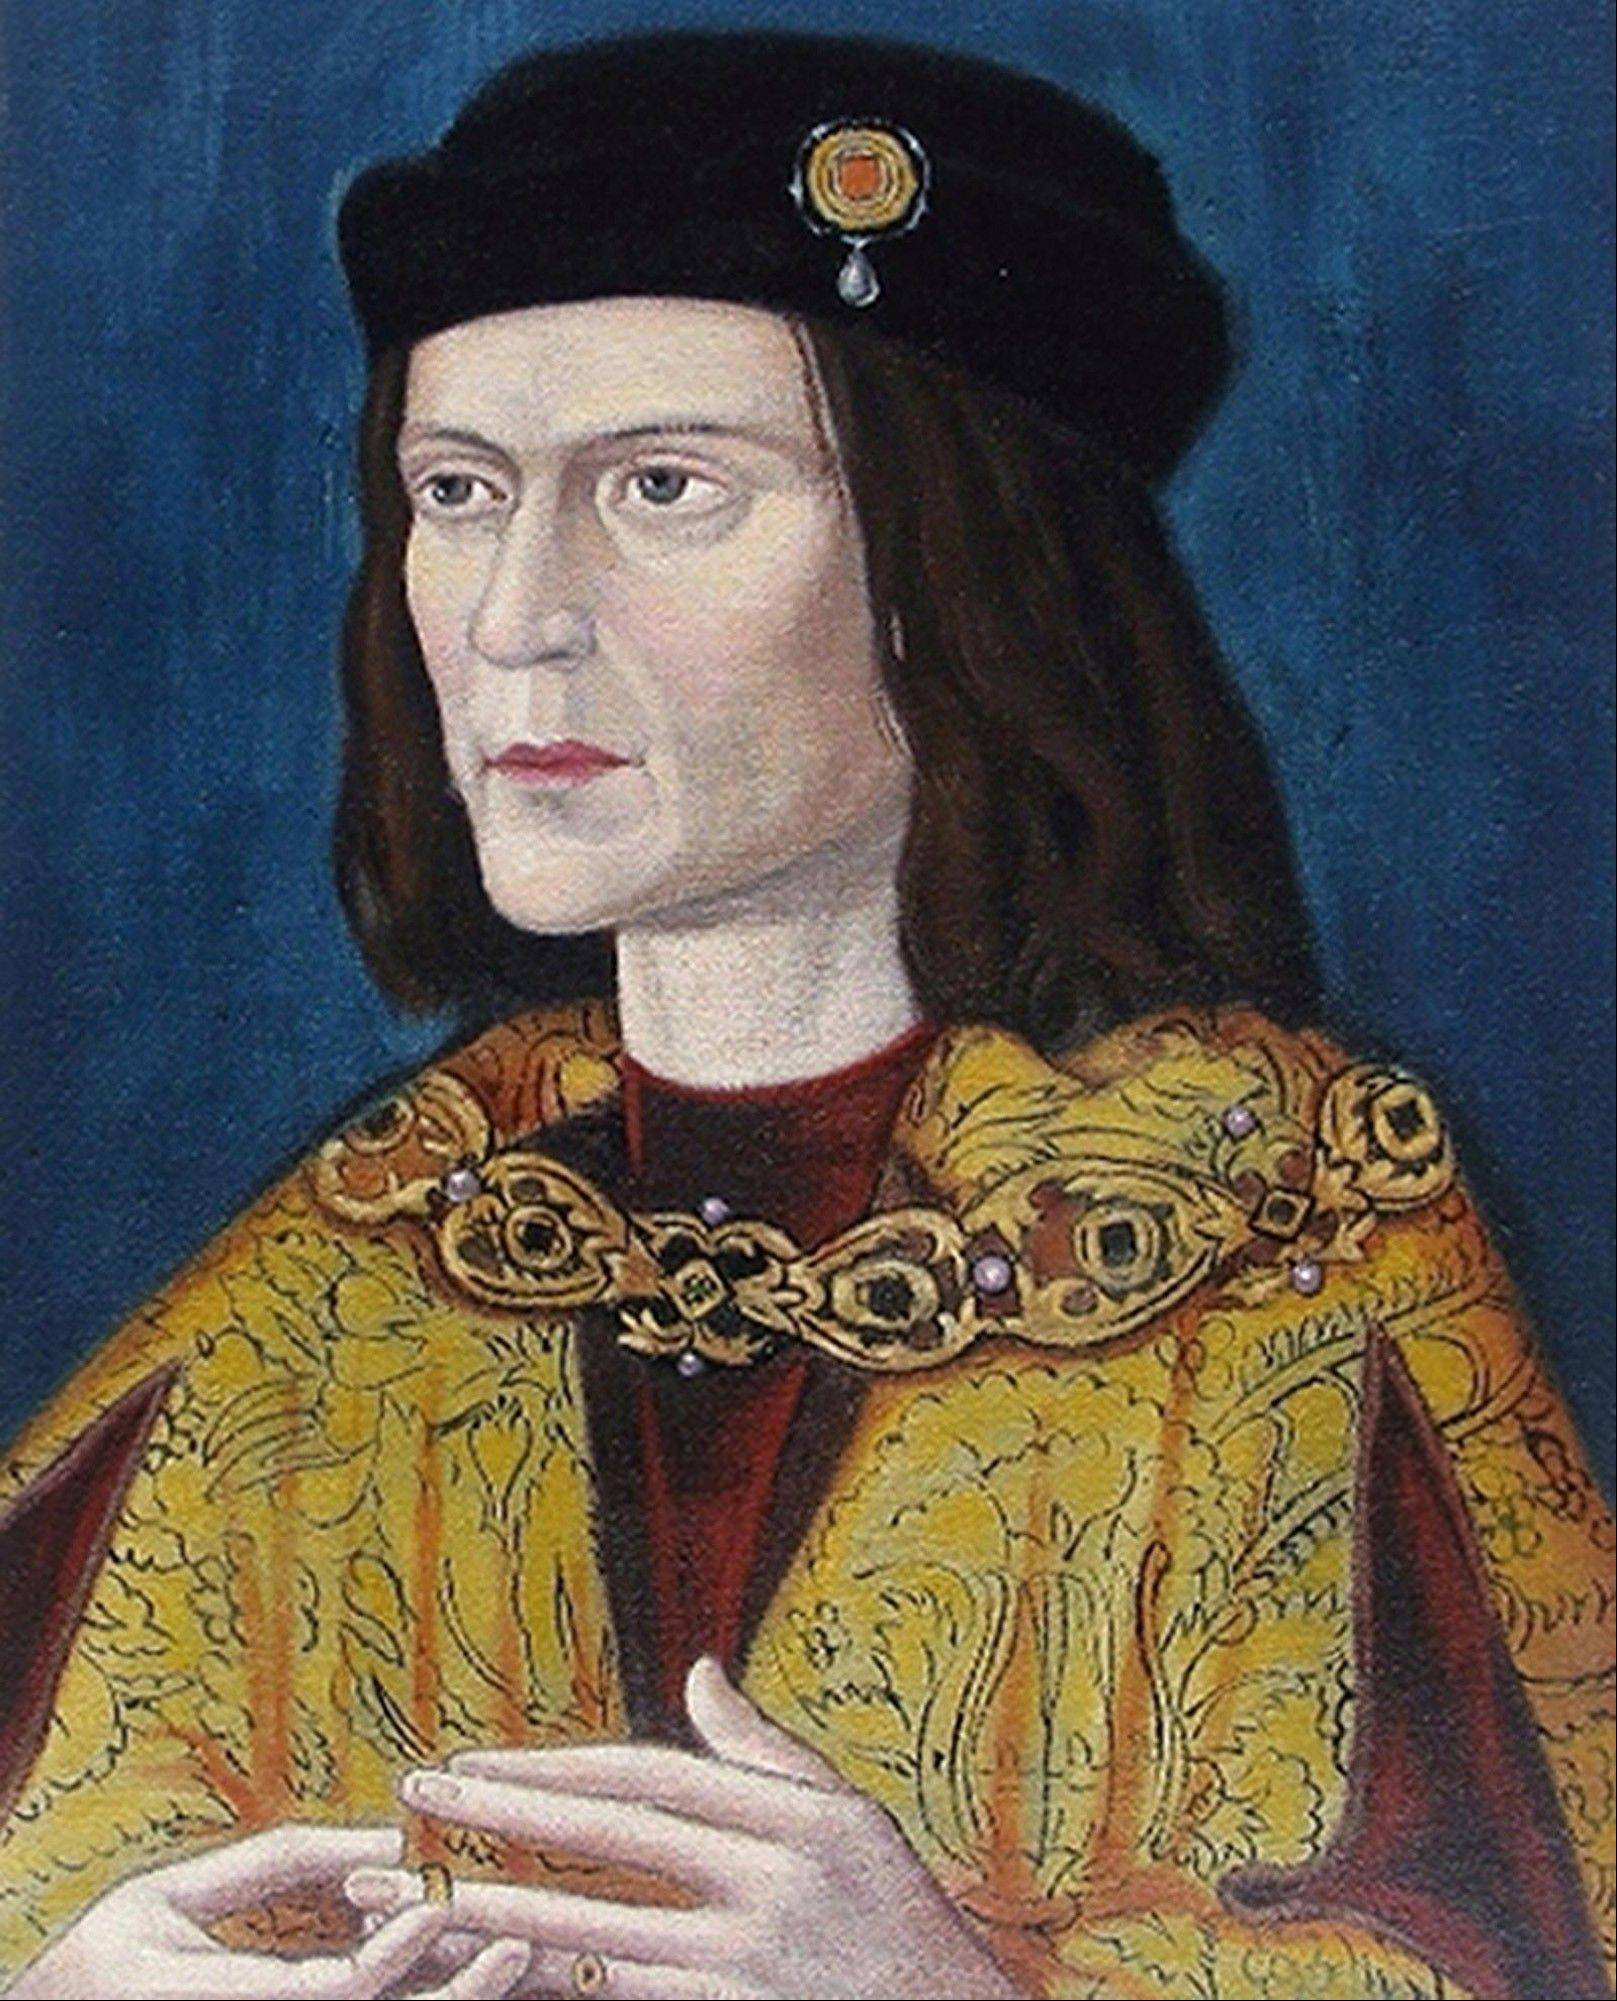 This photo made available by the University of Leicester, England, Monday of the earliest surviving portrait of Richard III in Leicester Cathedral. Richard was immortalized in a play by Shakespeare as a hunchbacked usurper who left a trail of bodies — including those of his two young nephews, murdered in the Tower of London — on his way to the throne.